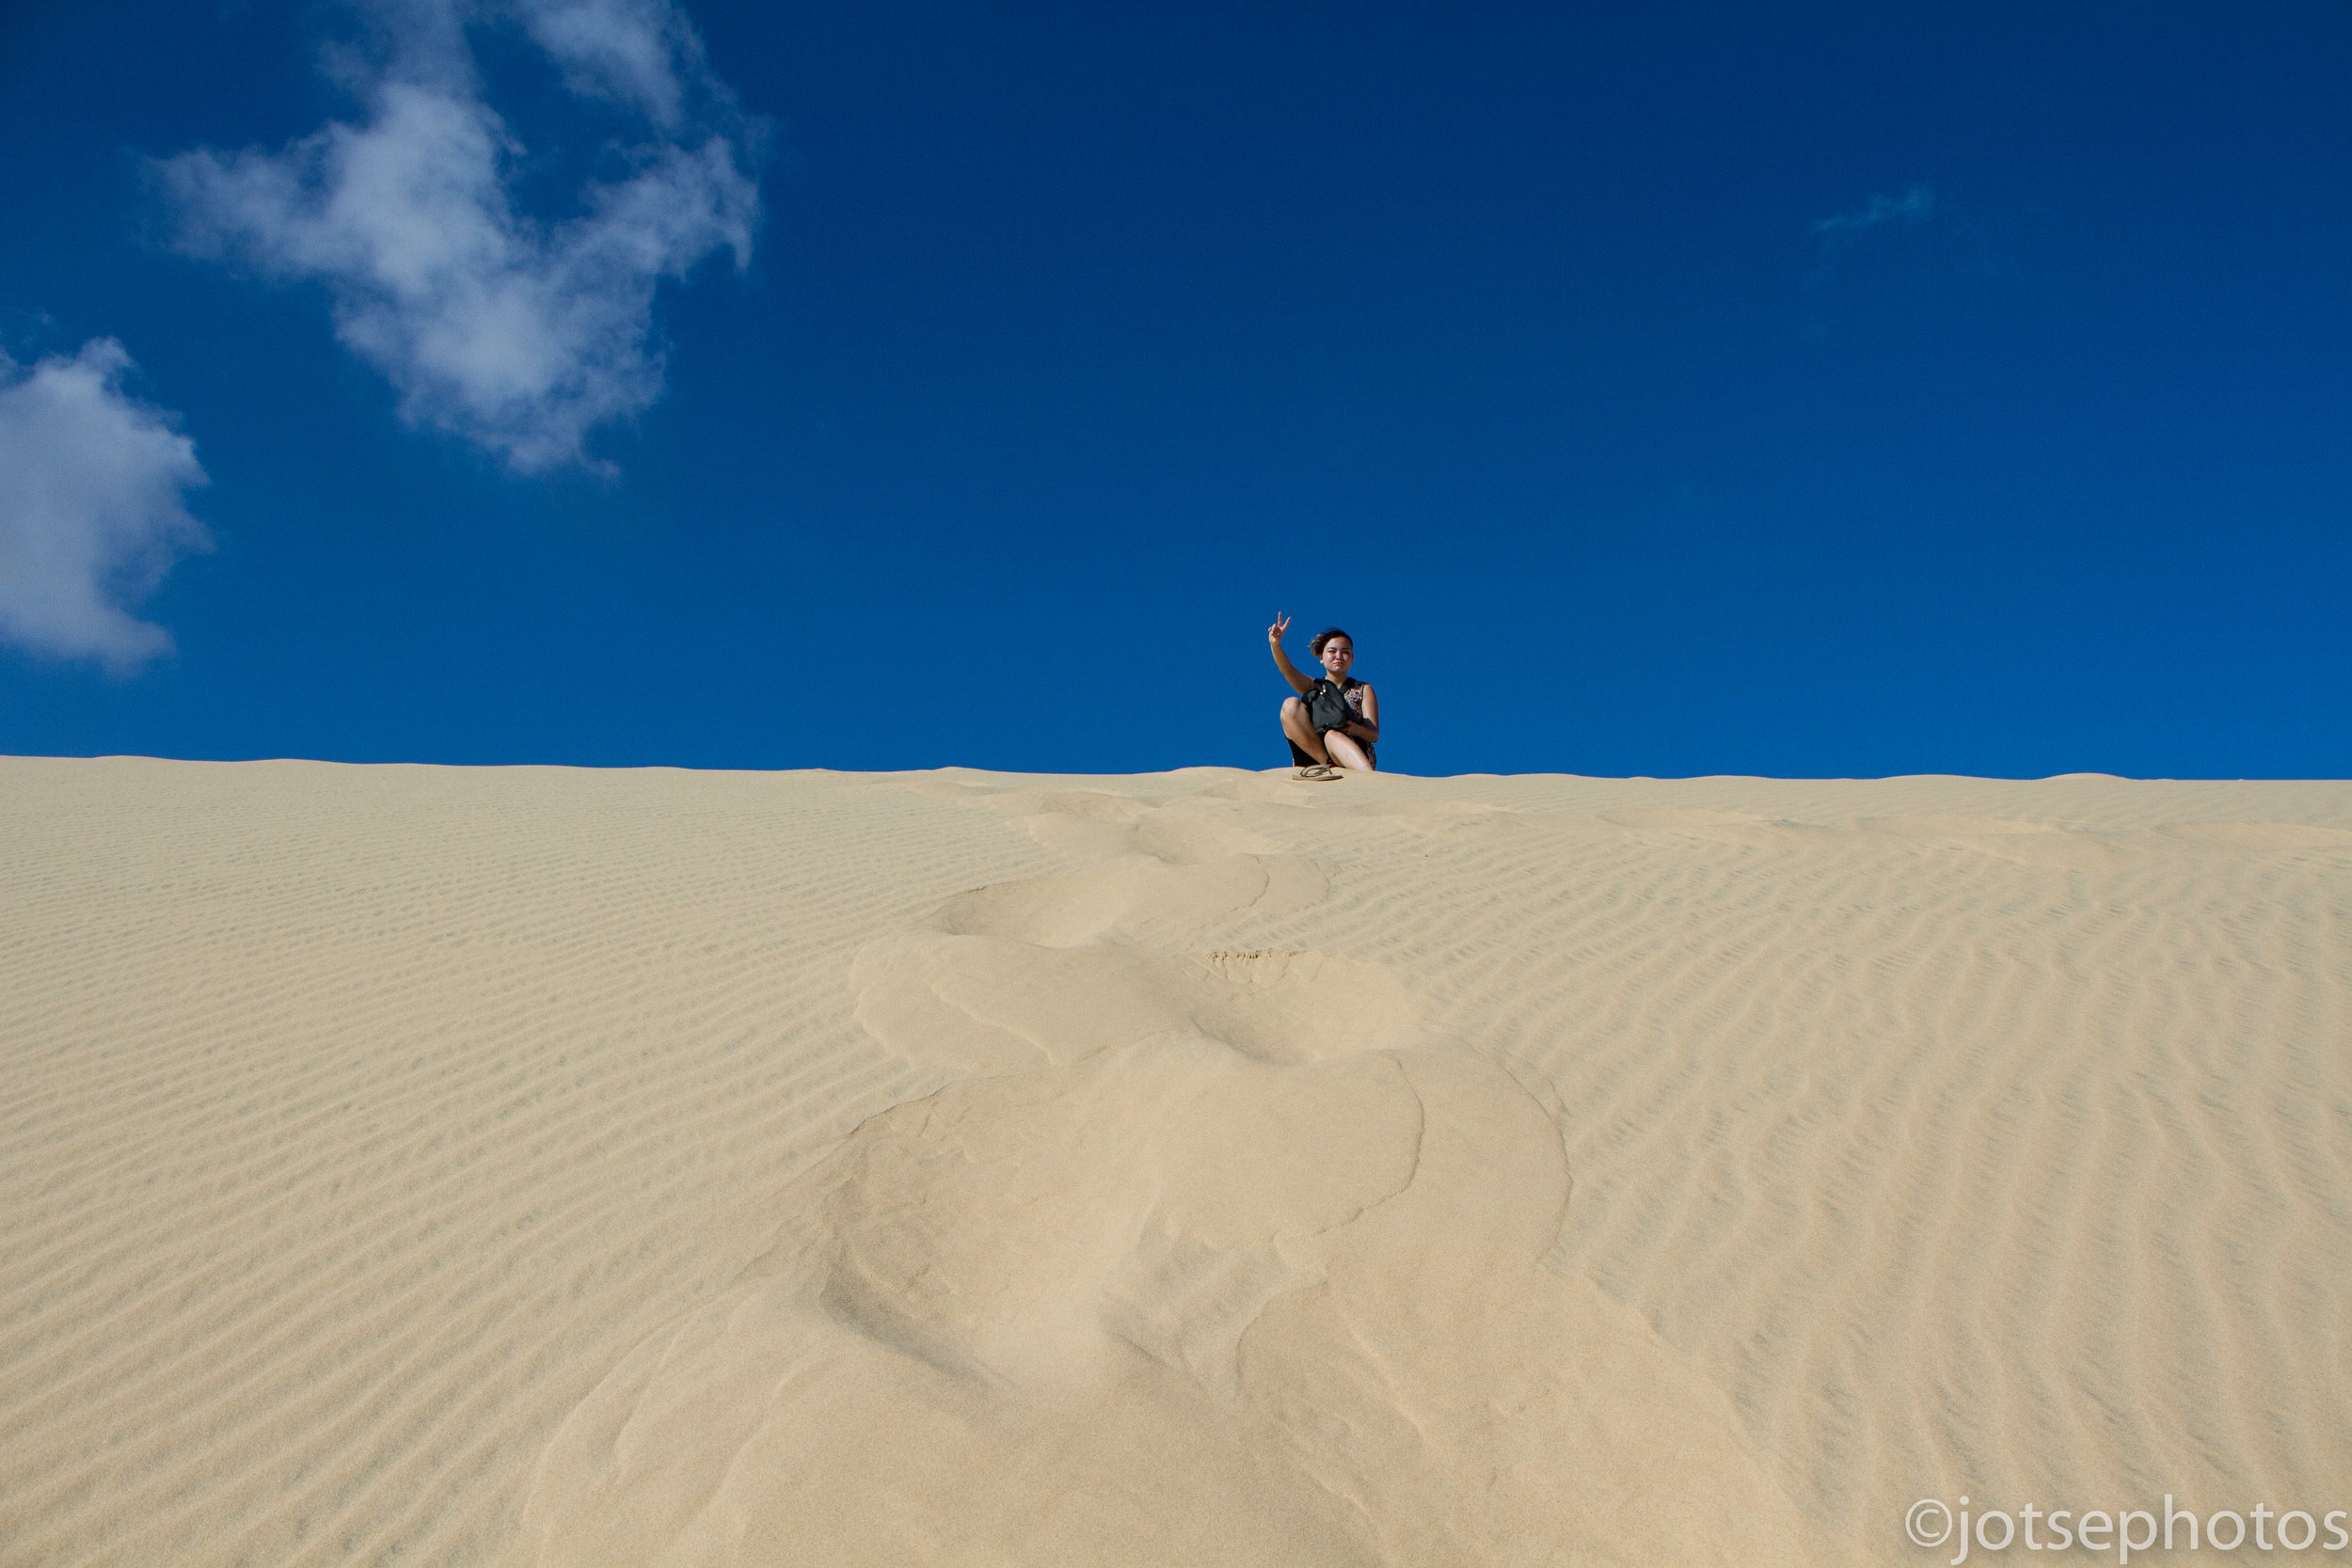 louise-on-the-white-sand-dunes_26889148740_o.jpg